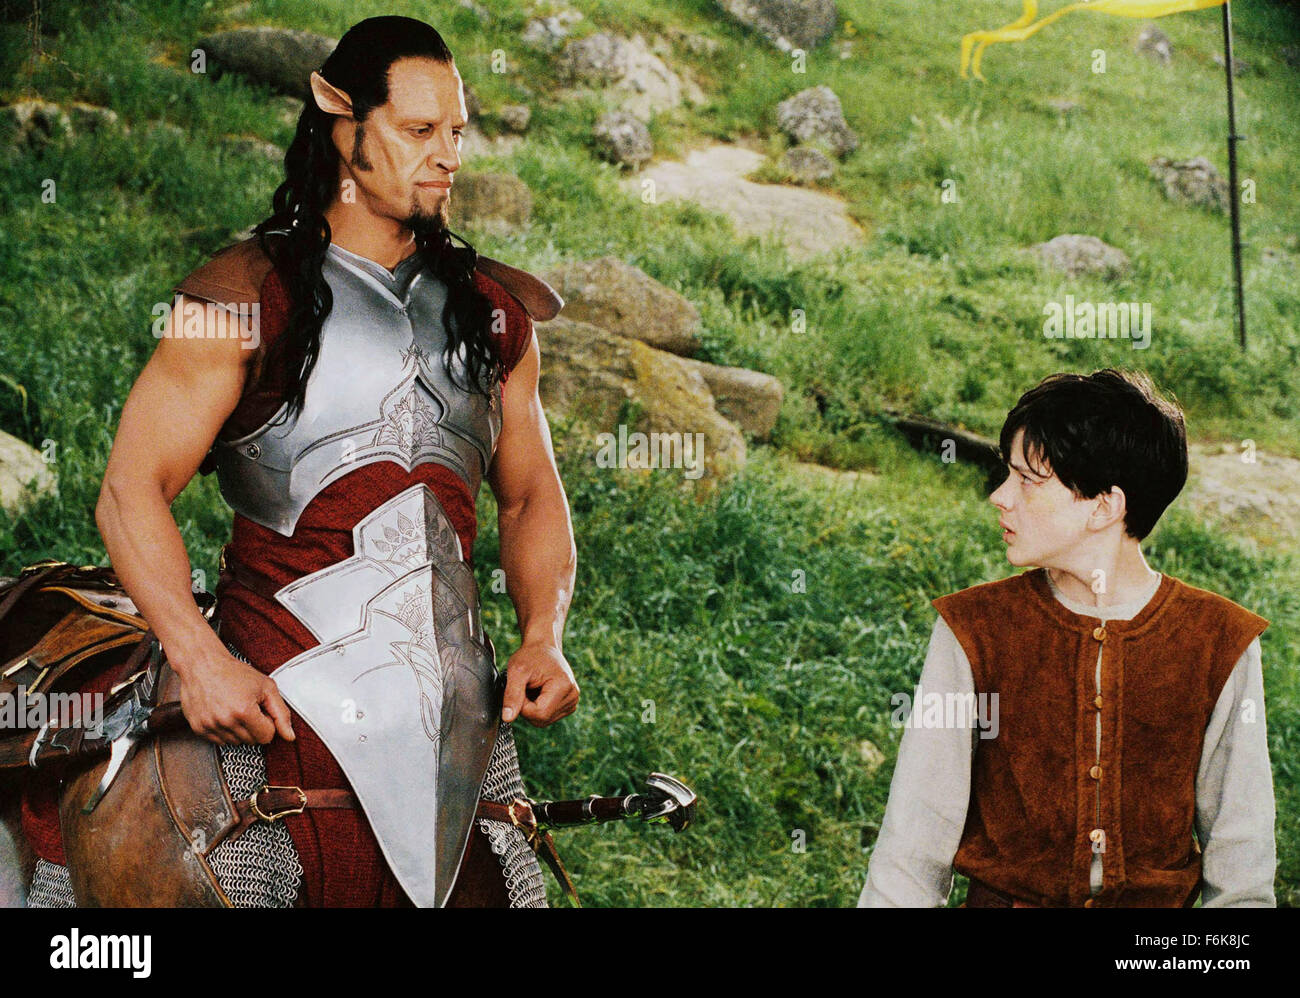 RELEASE DATE: December 9, 2005. MOVIE TITLE: The Chronicles of Narnia: The Lion, the Witch and the Wardrobe. STUDIO: - Stock Image